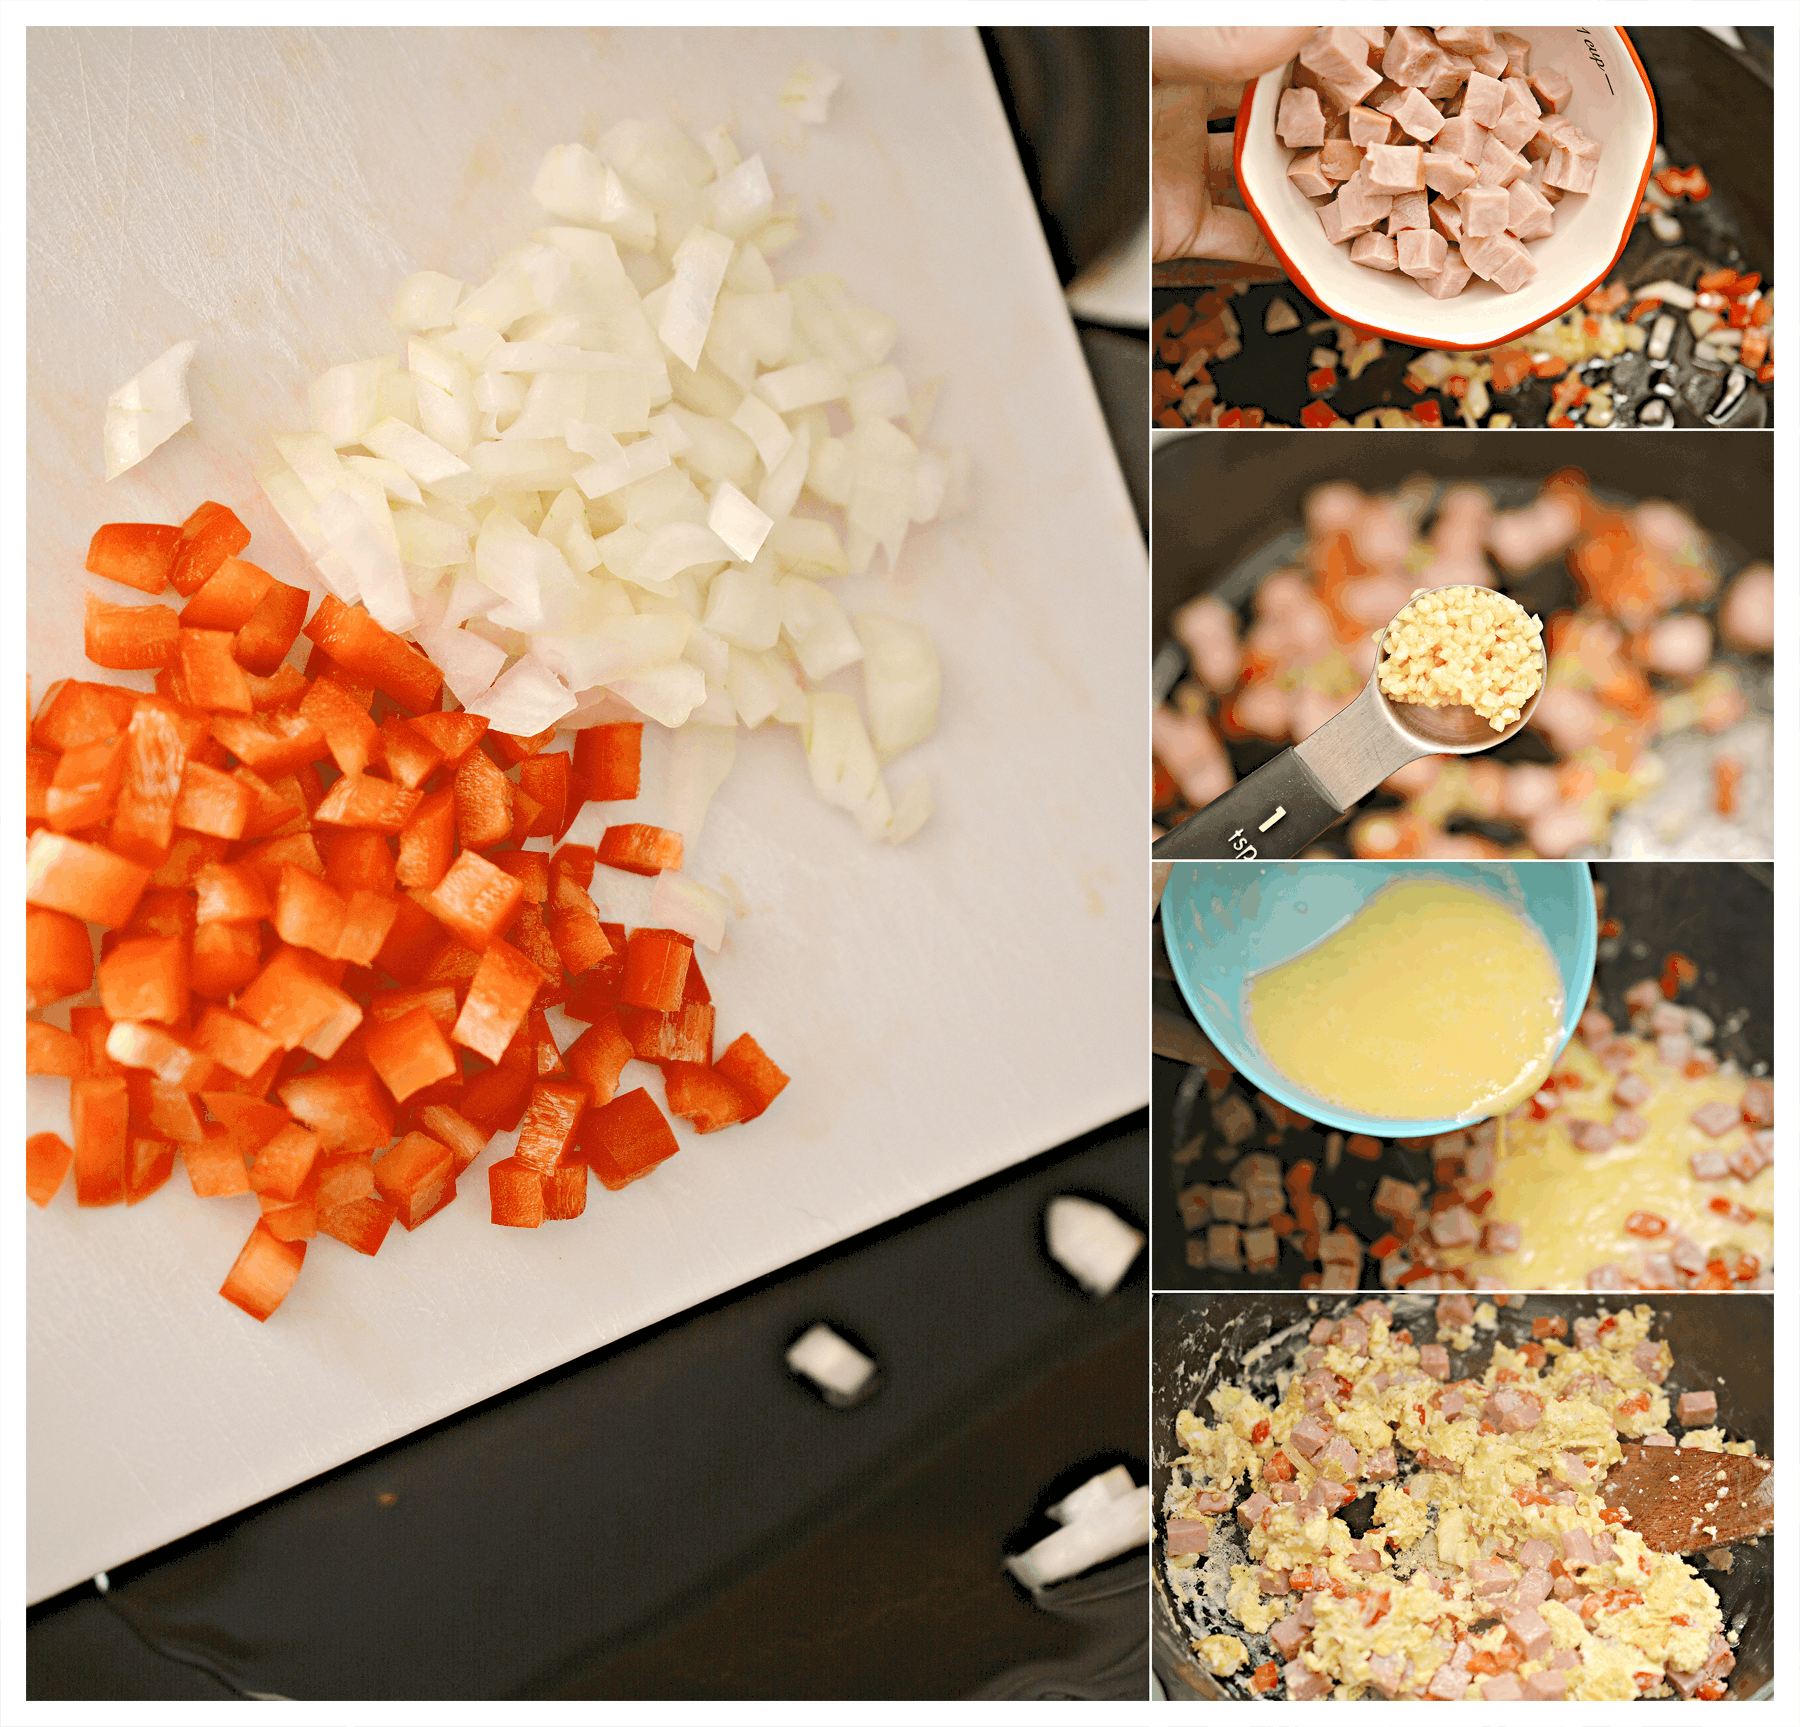 step by step for making Western Omelet Egg Scramble with Cheese Sauce